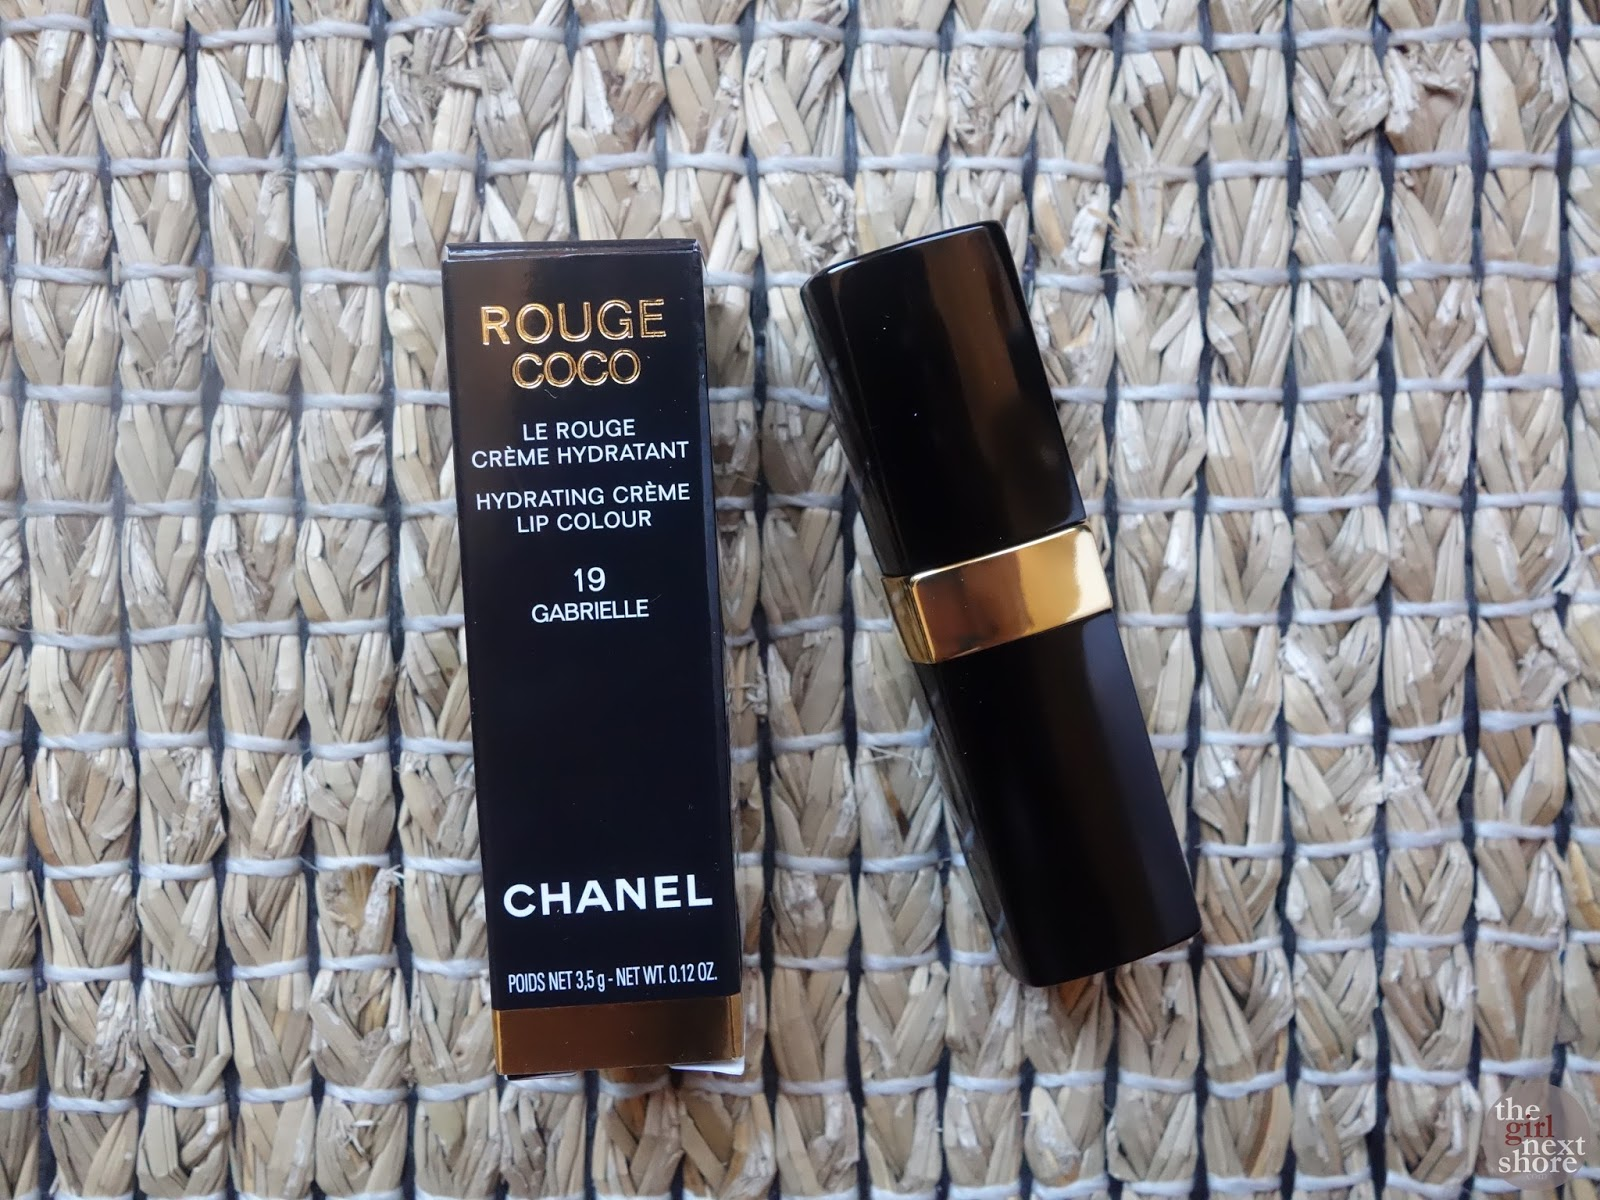 Chanel Rouge Coco Gabrielle